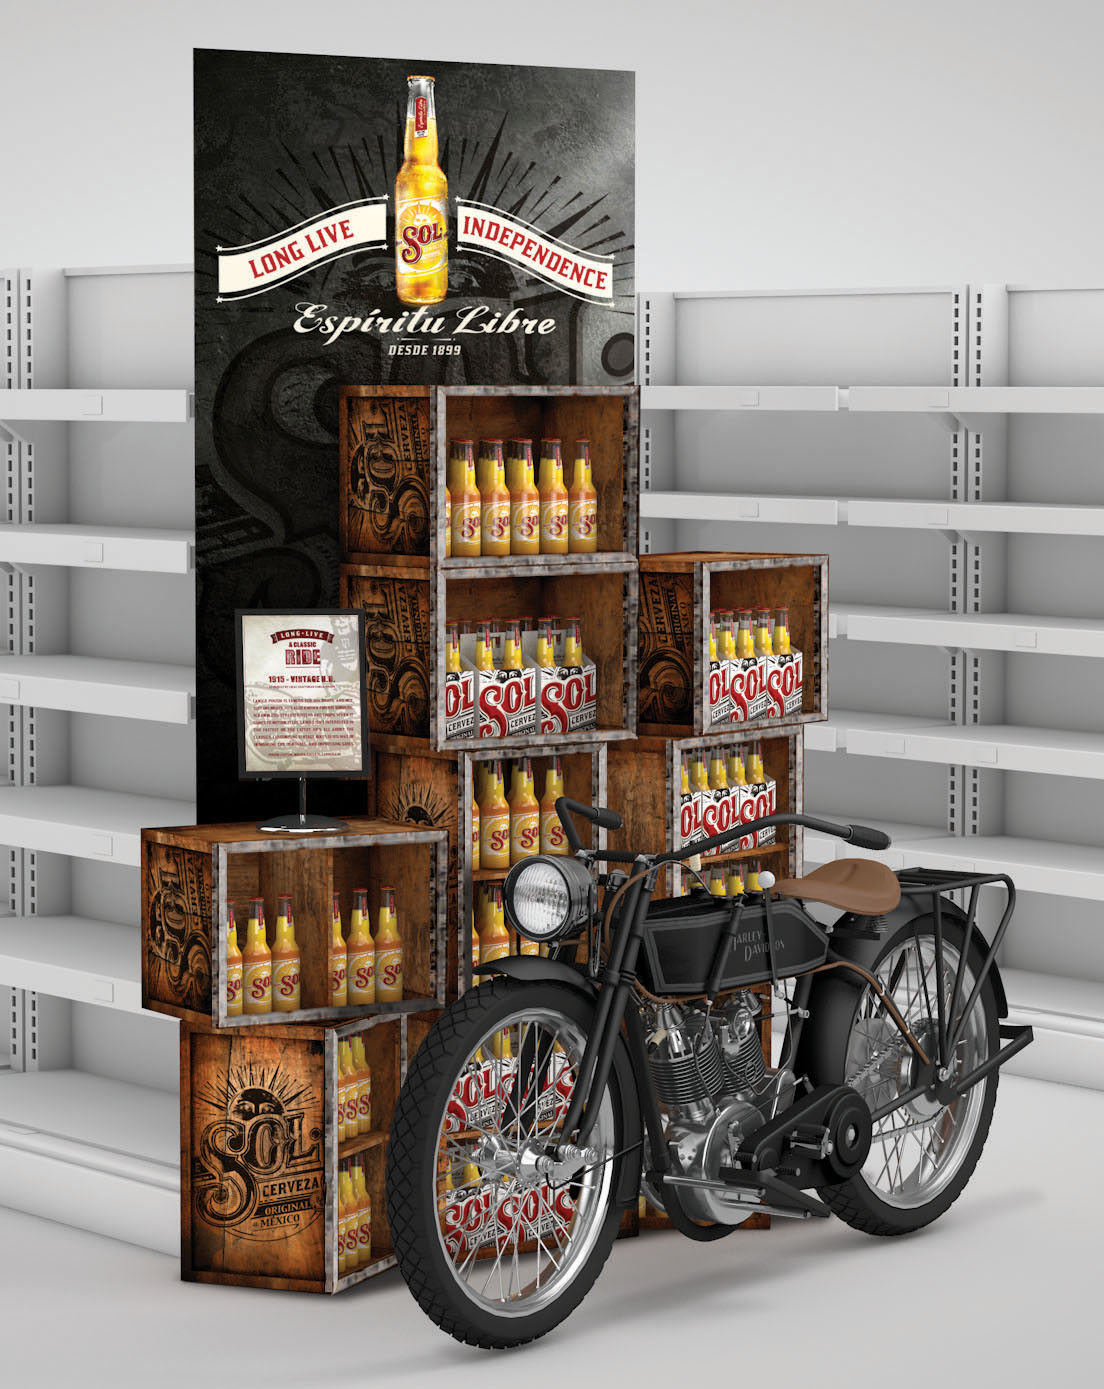 Modular display stand - Can be assembled and reassembled simply depending on space required